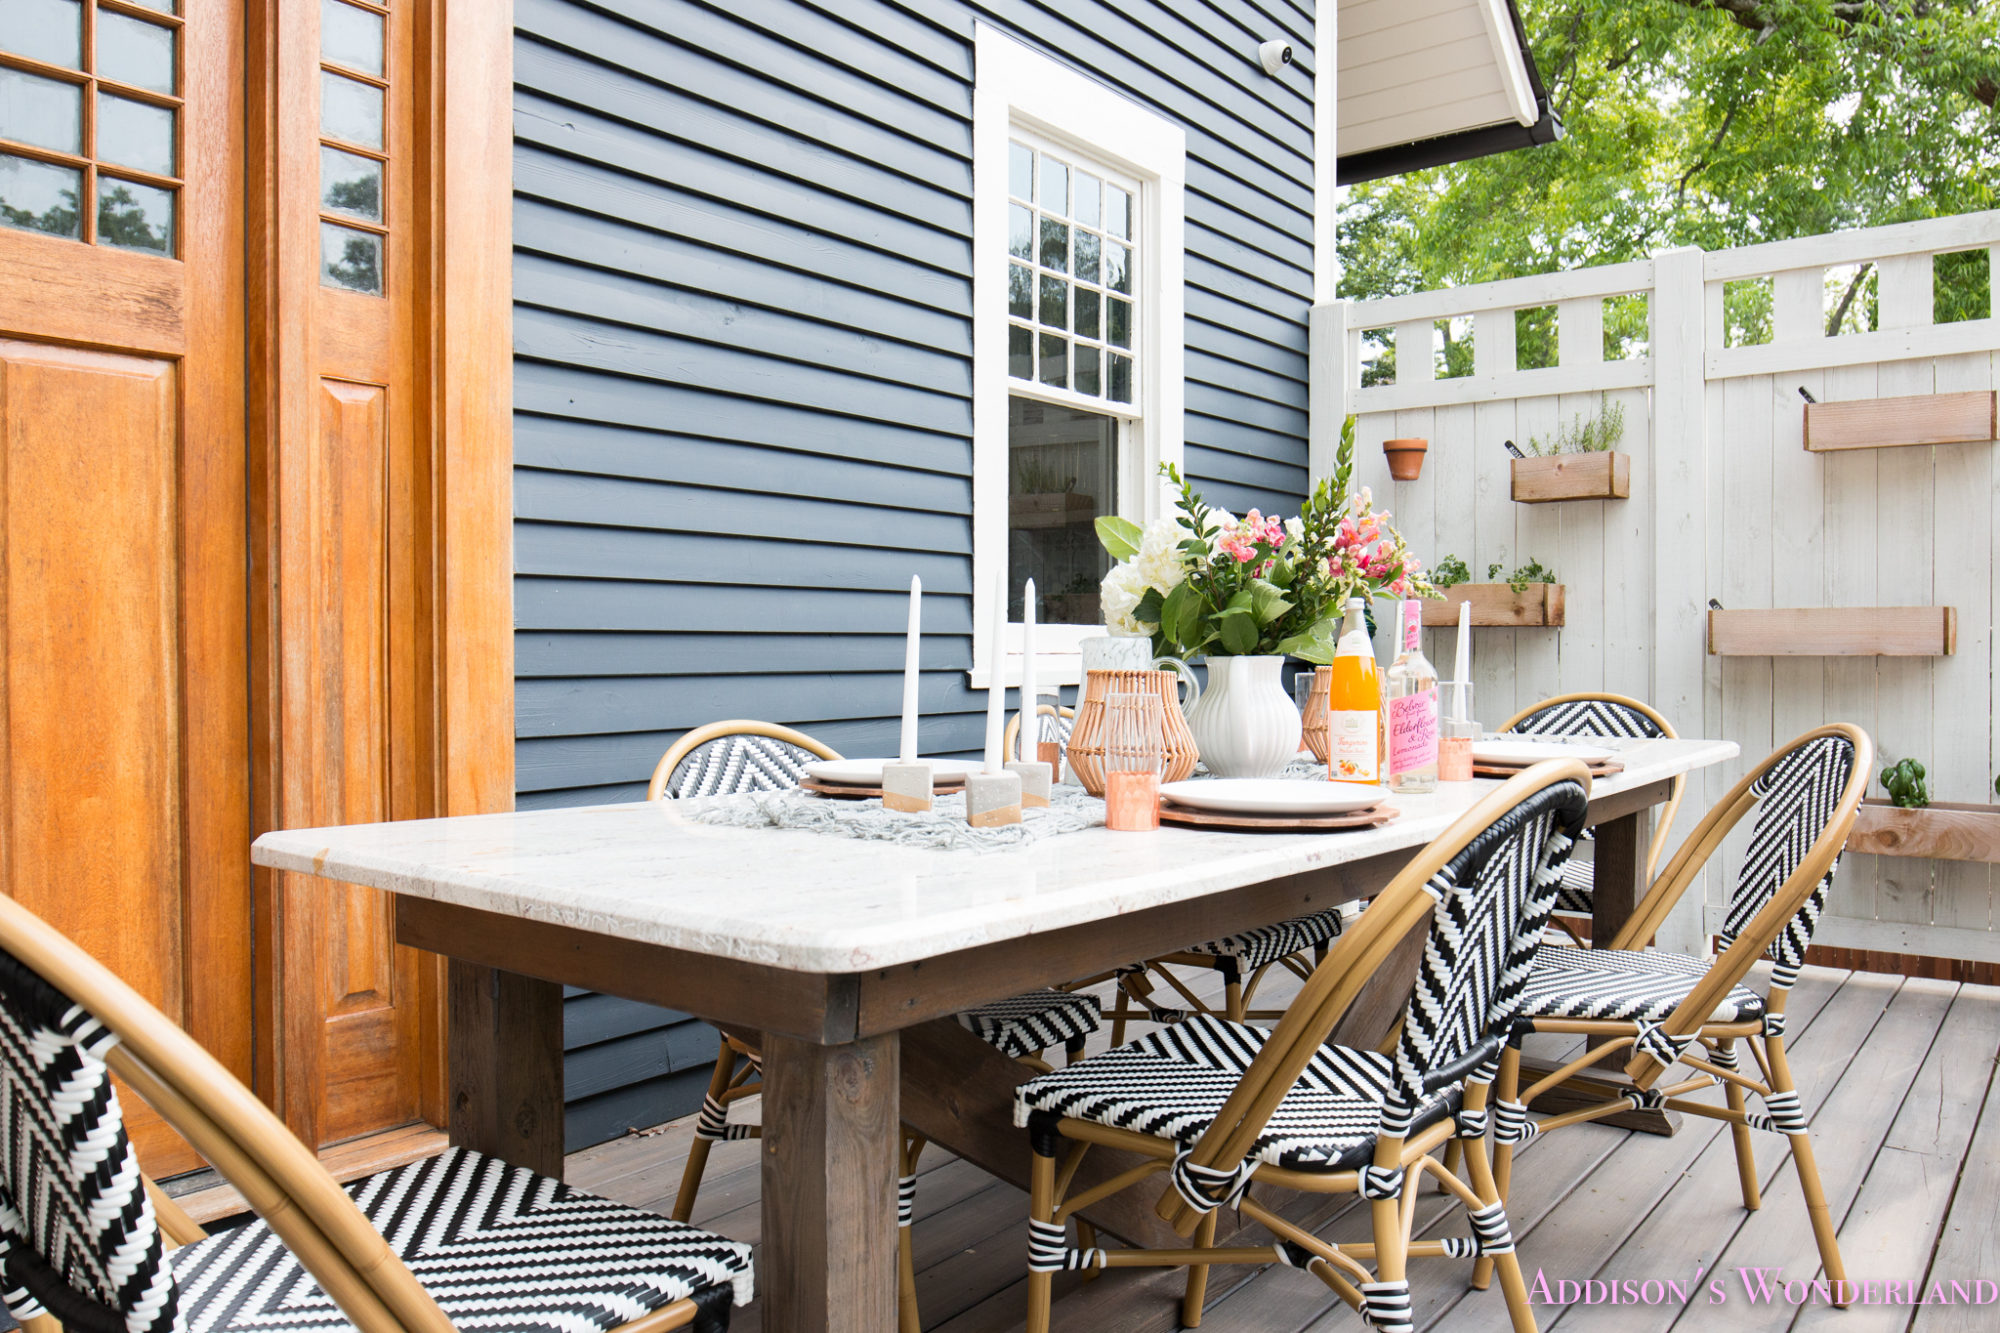 Outdoor Dining, Table Decor & the Cutest Bistro Chairs ... on Backyard Table Decor id=13216